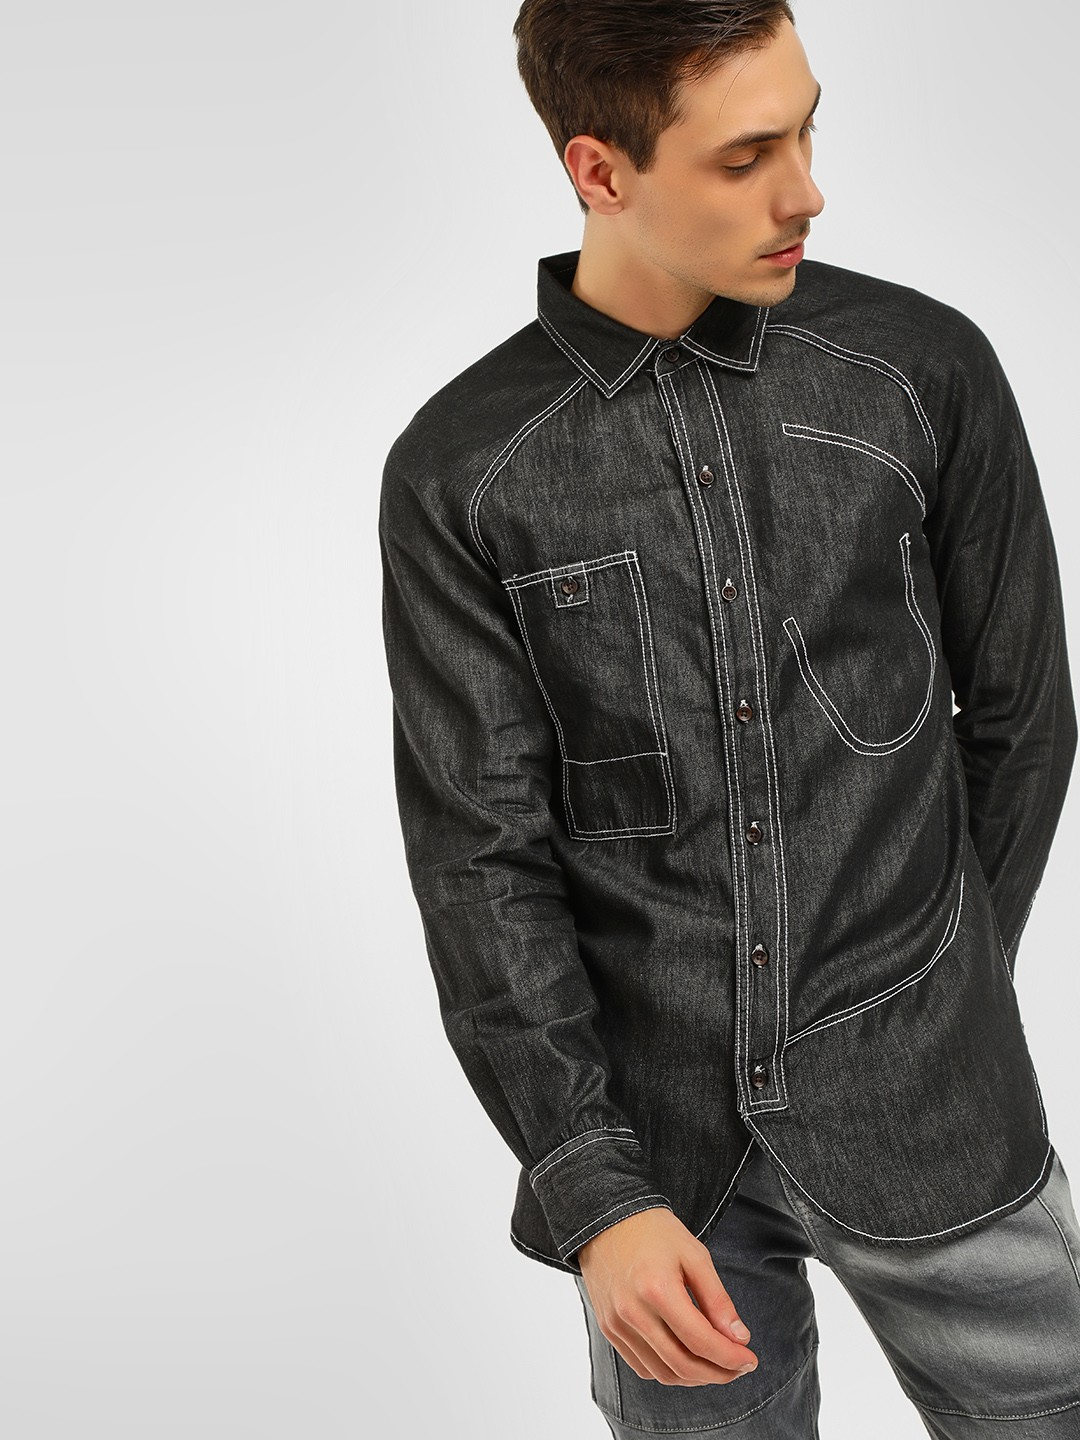 Noble Faith Black Denim Long Sleeves Shirt 1